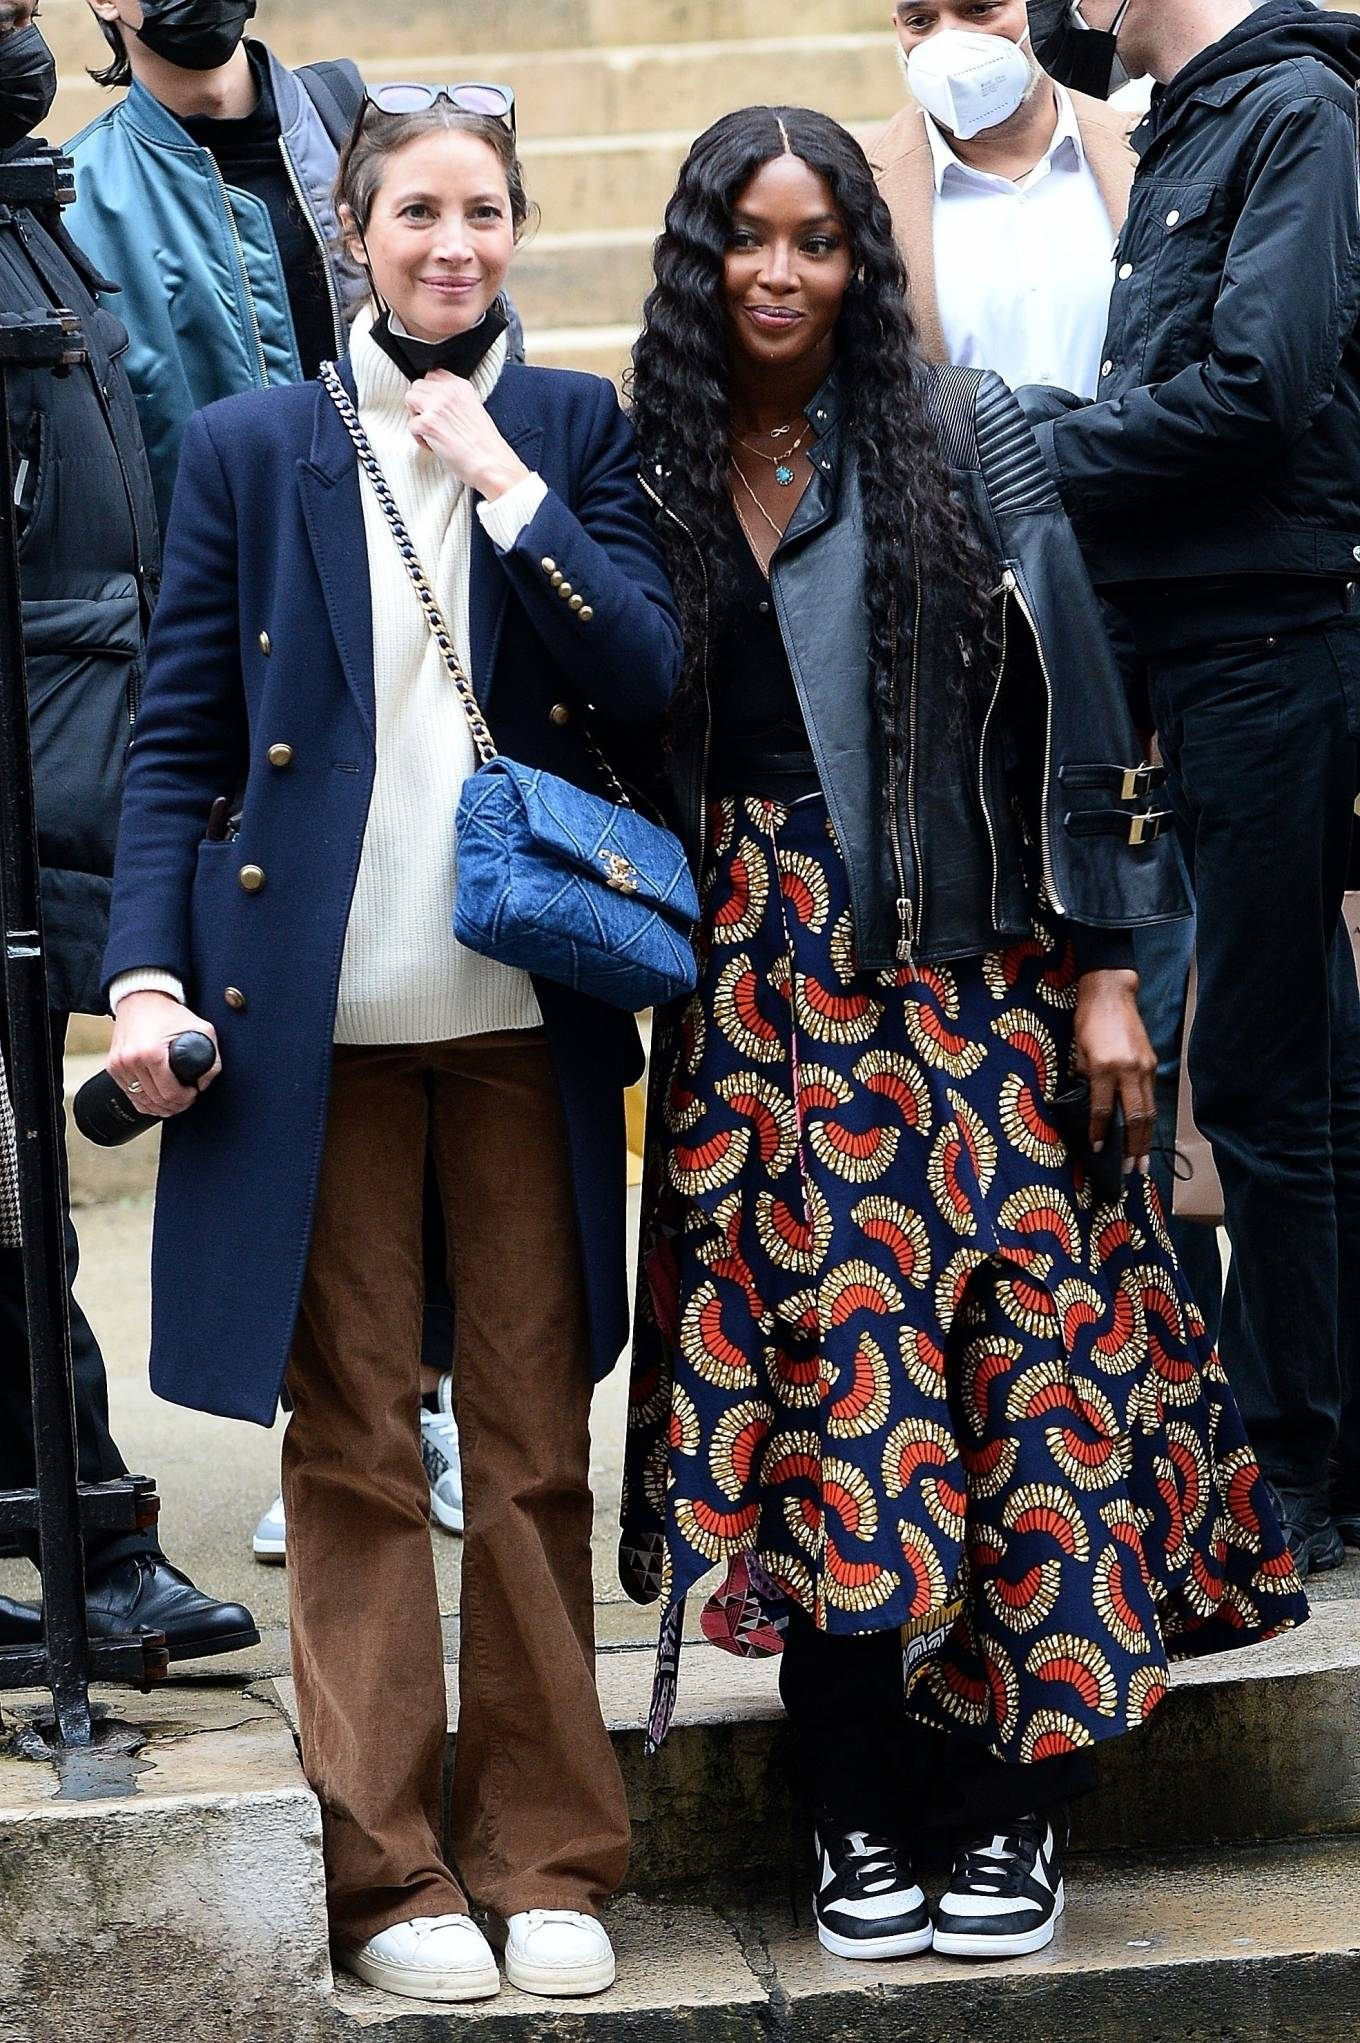 Naomi Campbell donning a black quilted leather biker jacket with bell sleeves, shirt collar and zipper accents